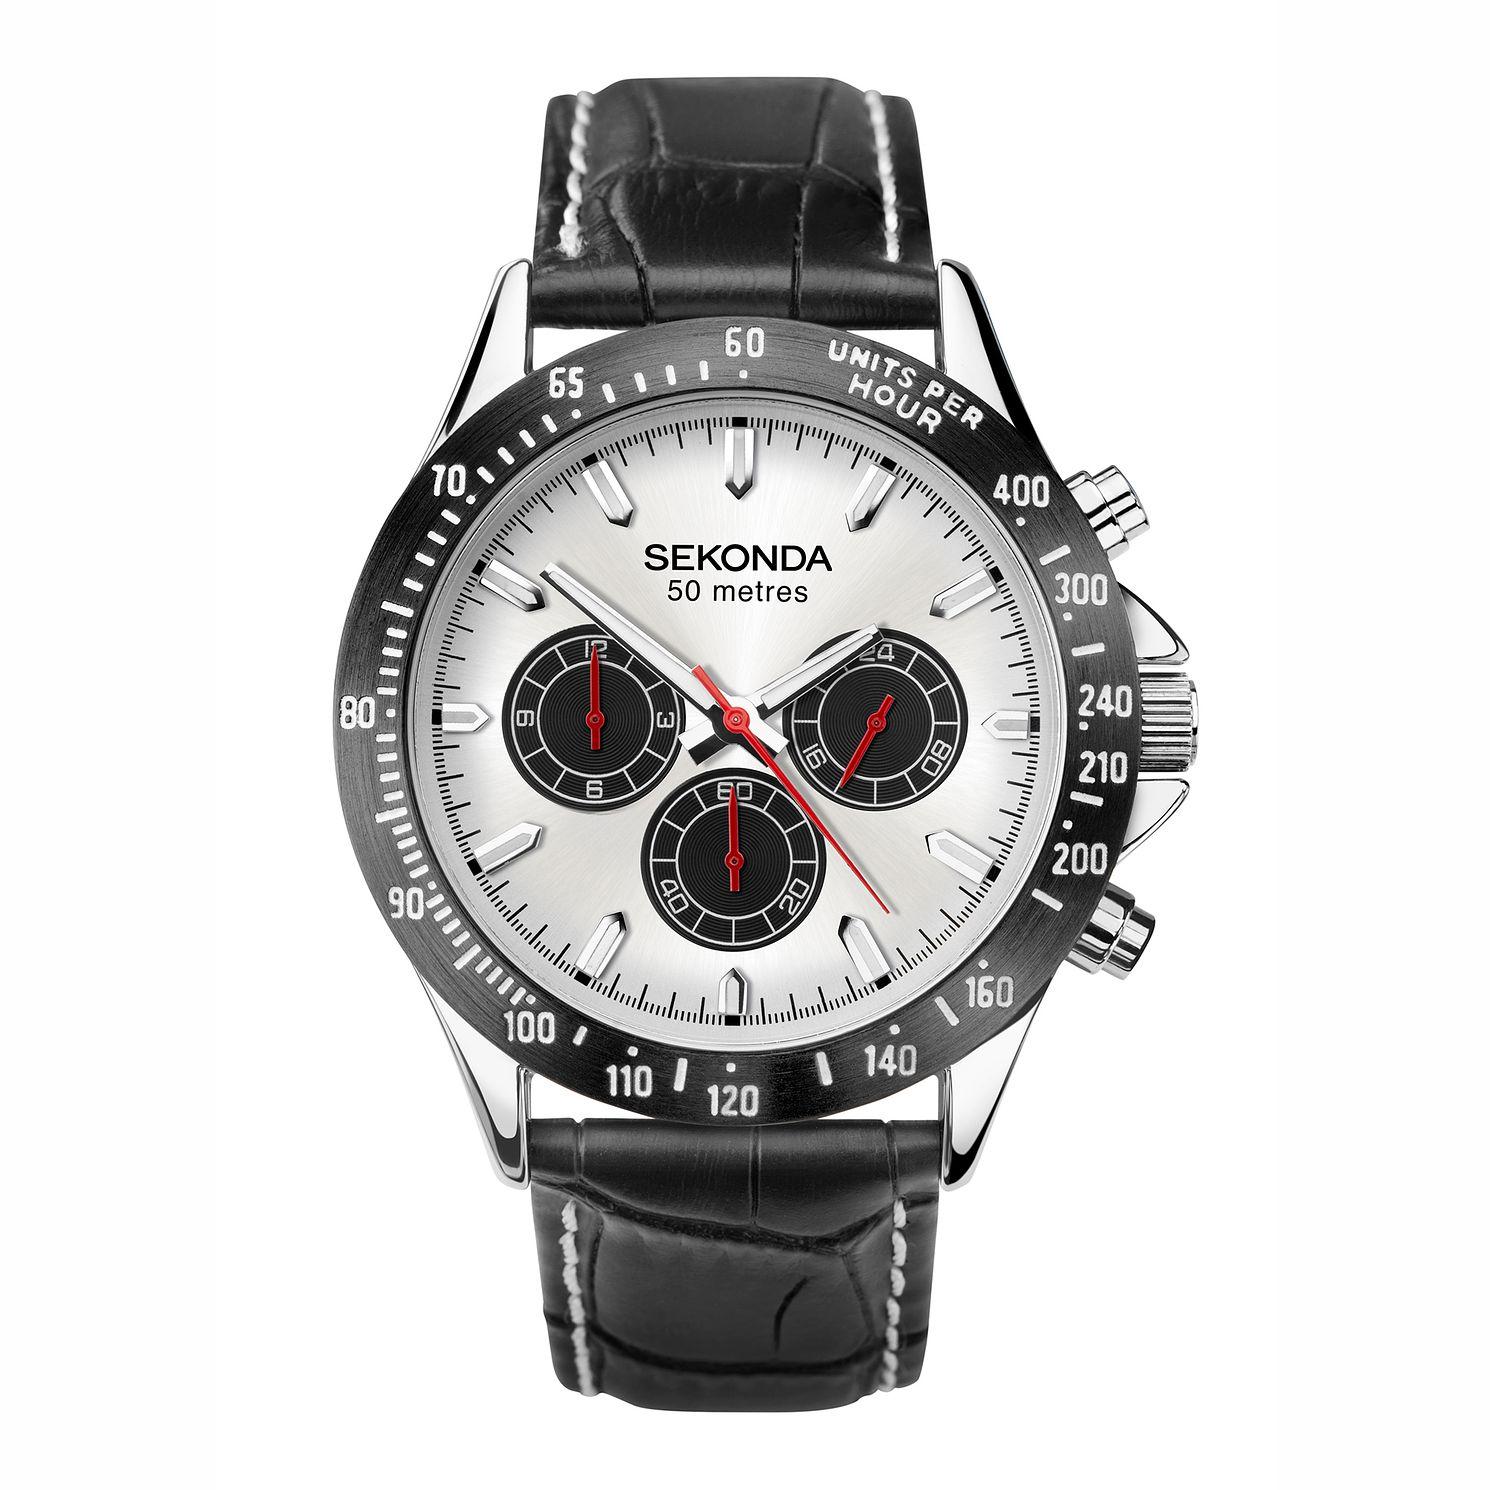 Sekonda Men's Silver and Black Leather Watch Strap Watch - Product number 4828143